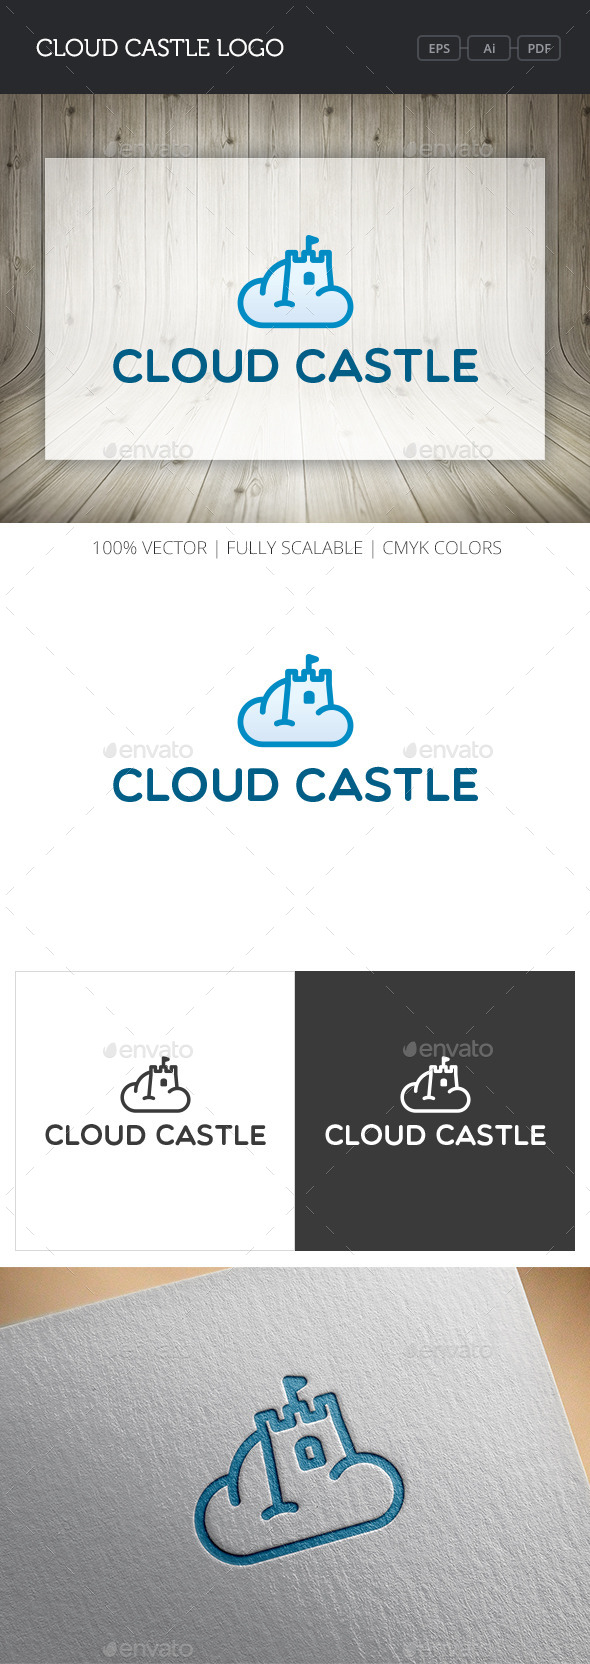 GraphicRiver Cloud Castle Logo 11033194